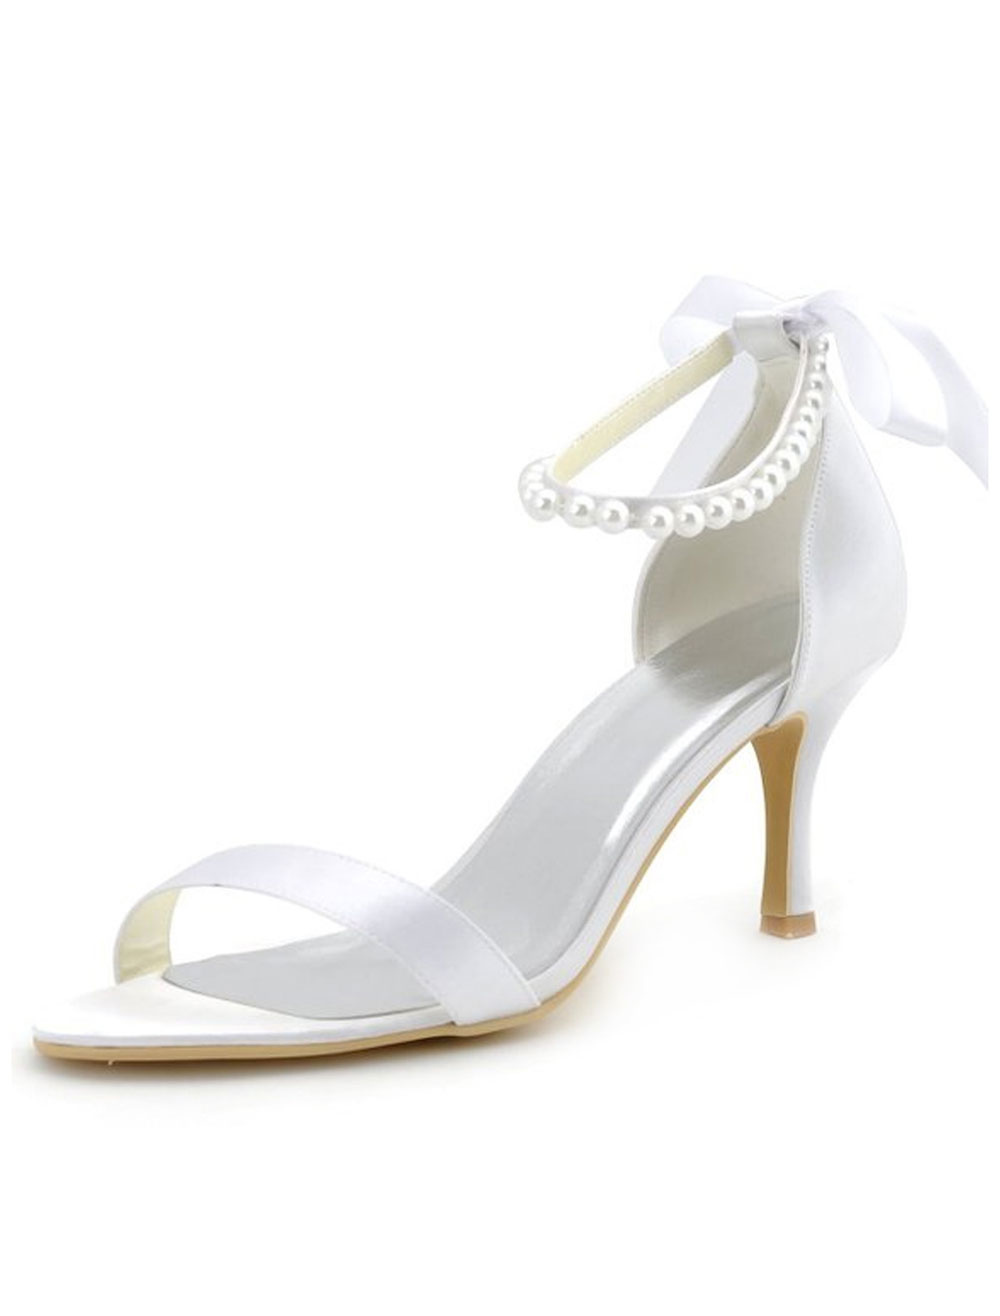 Bow Pearls Bridal Sandals White Satin Wedding Heels for Women